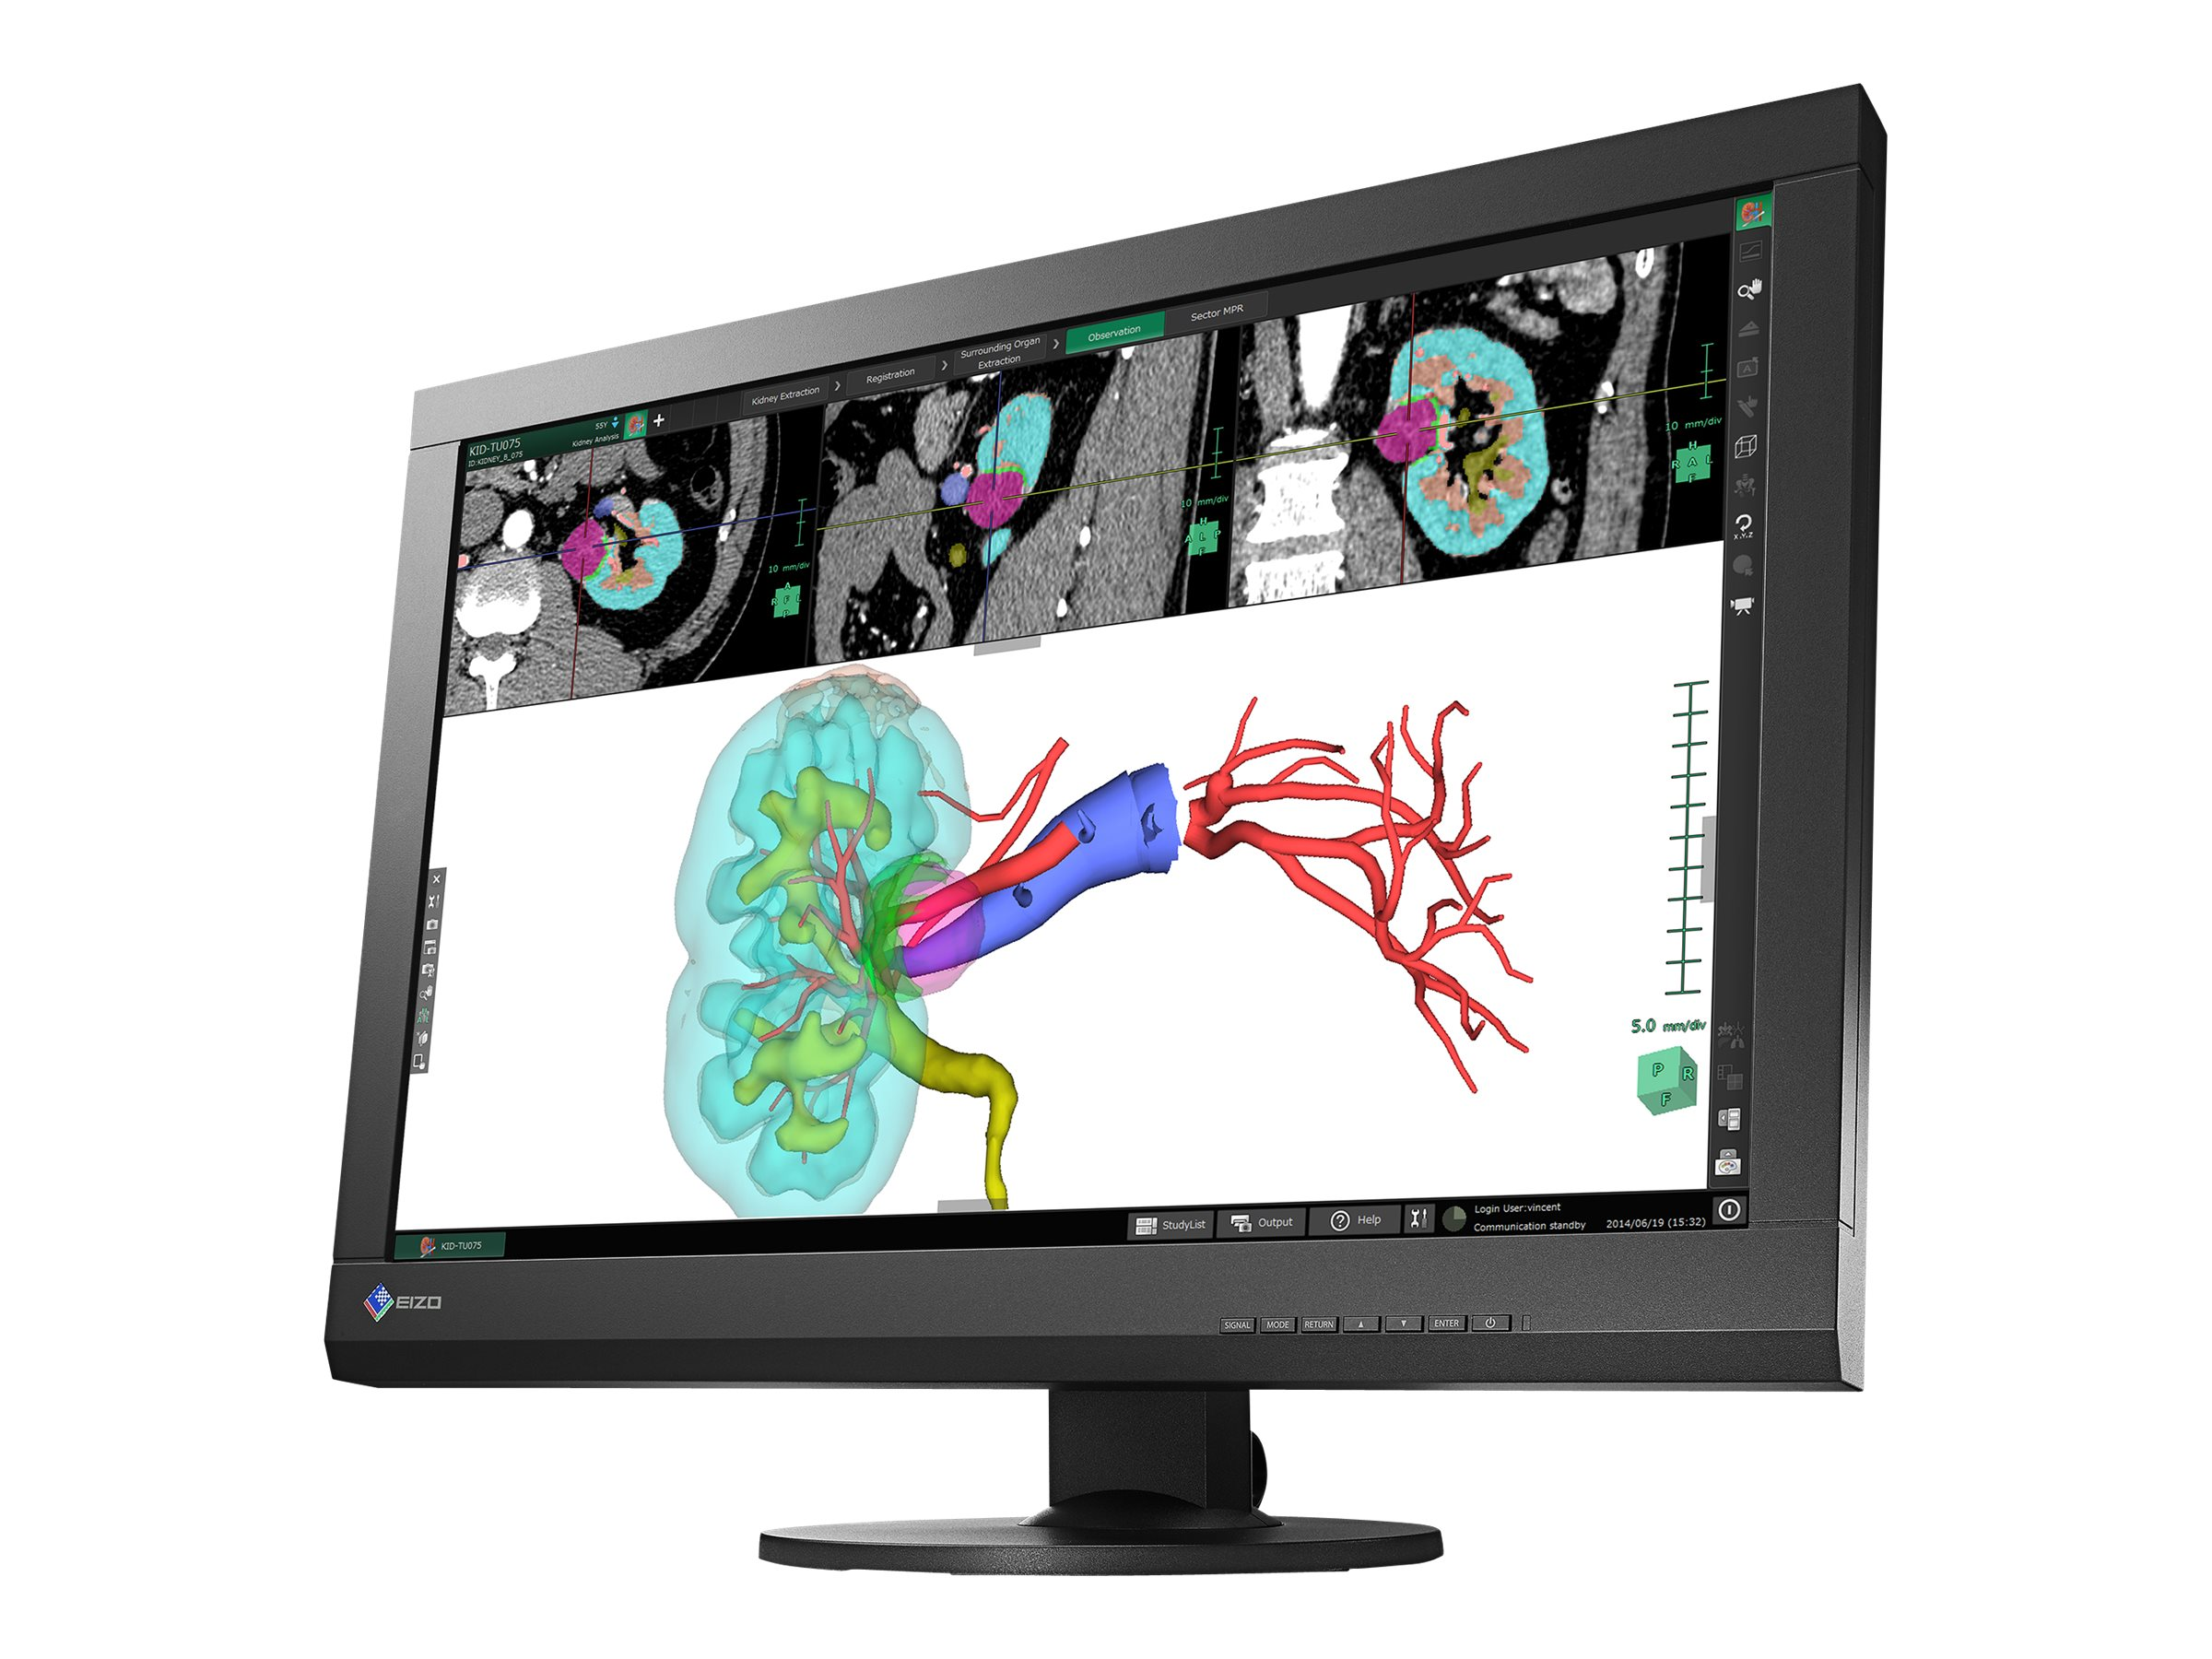 Eizo Nanao 24.1 MX242W LED-LCD Monitor, Black, MX242W-BK, 18498290, Monitors - LED-LCD